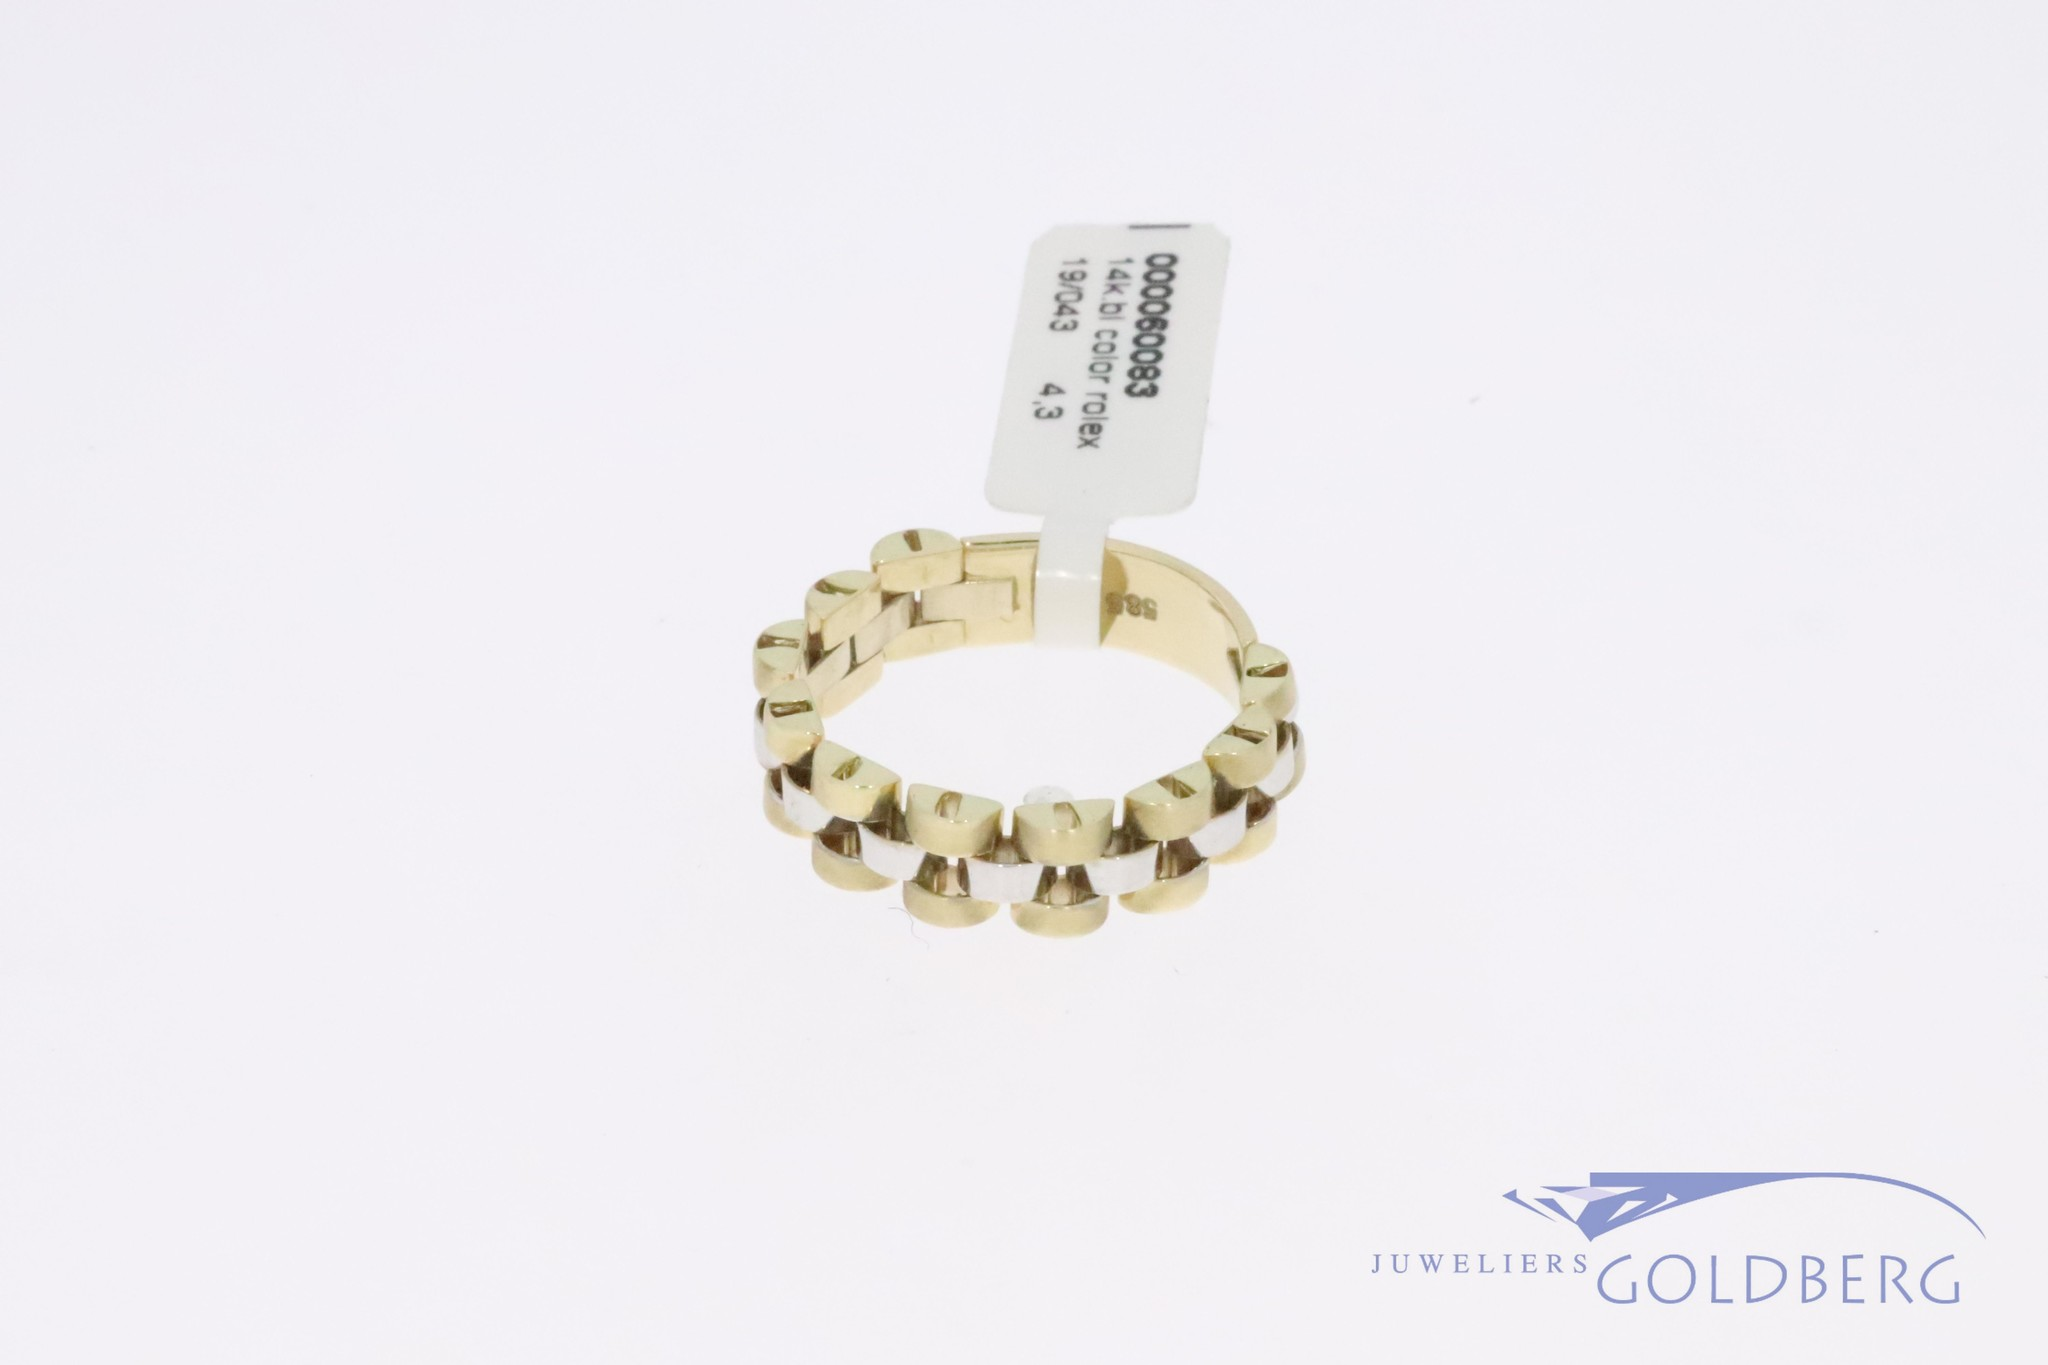 """14k gold bicolor """"Rolex-link"""" ring, 1980's-90's style."""